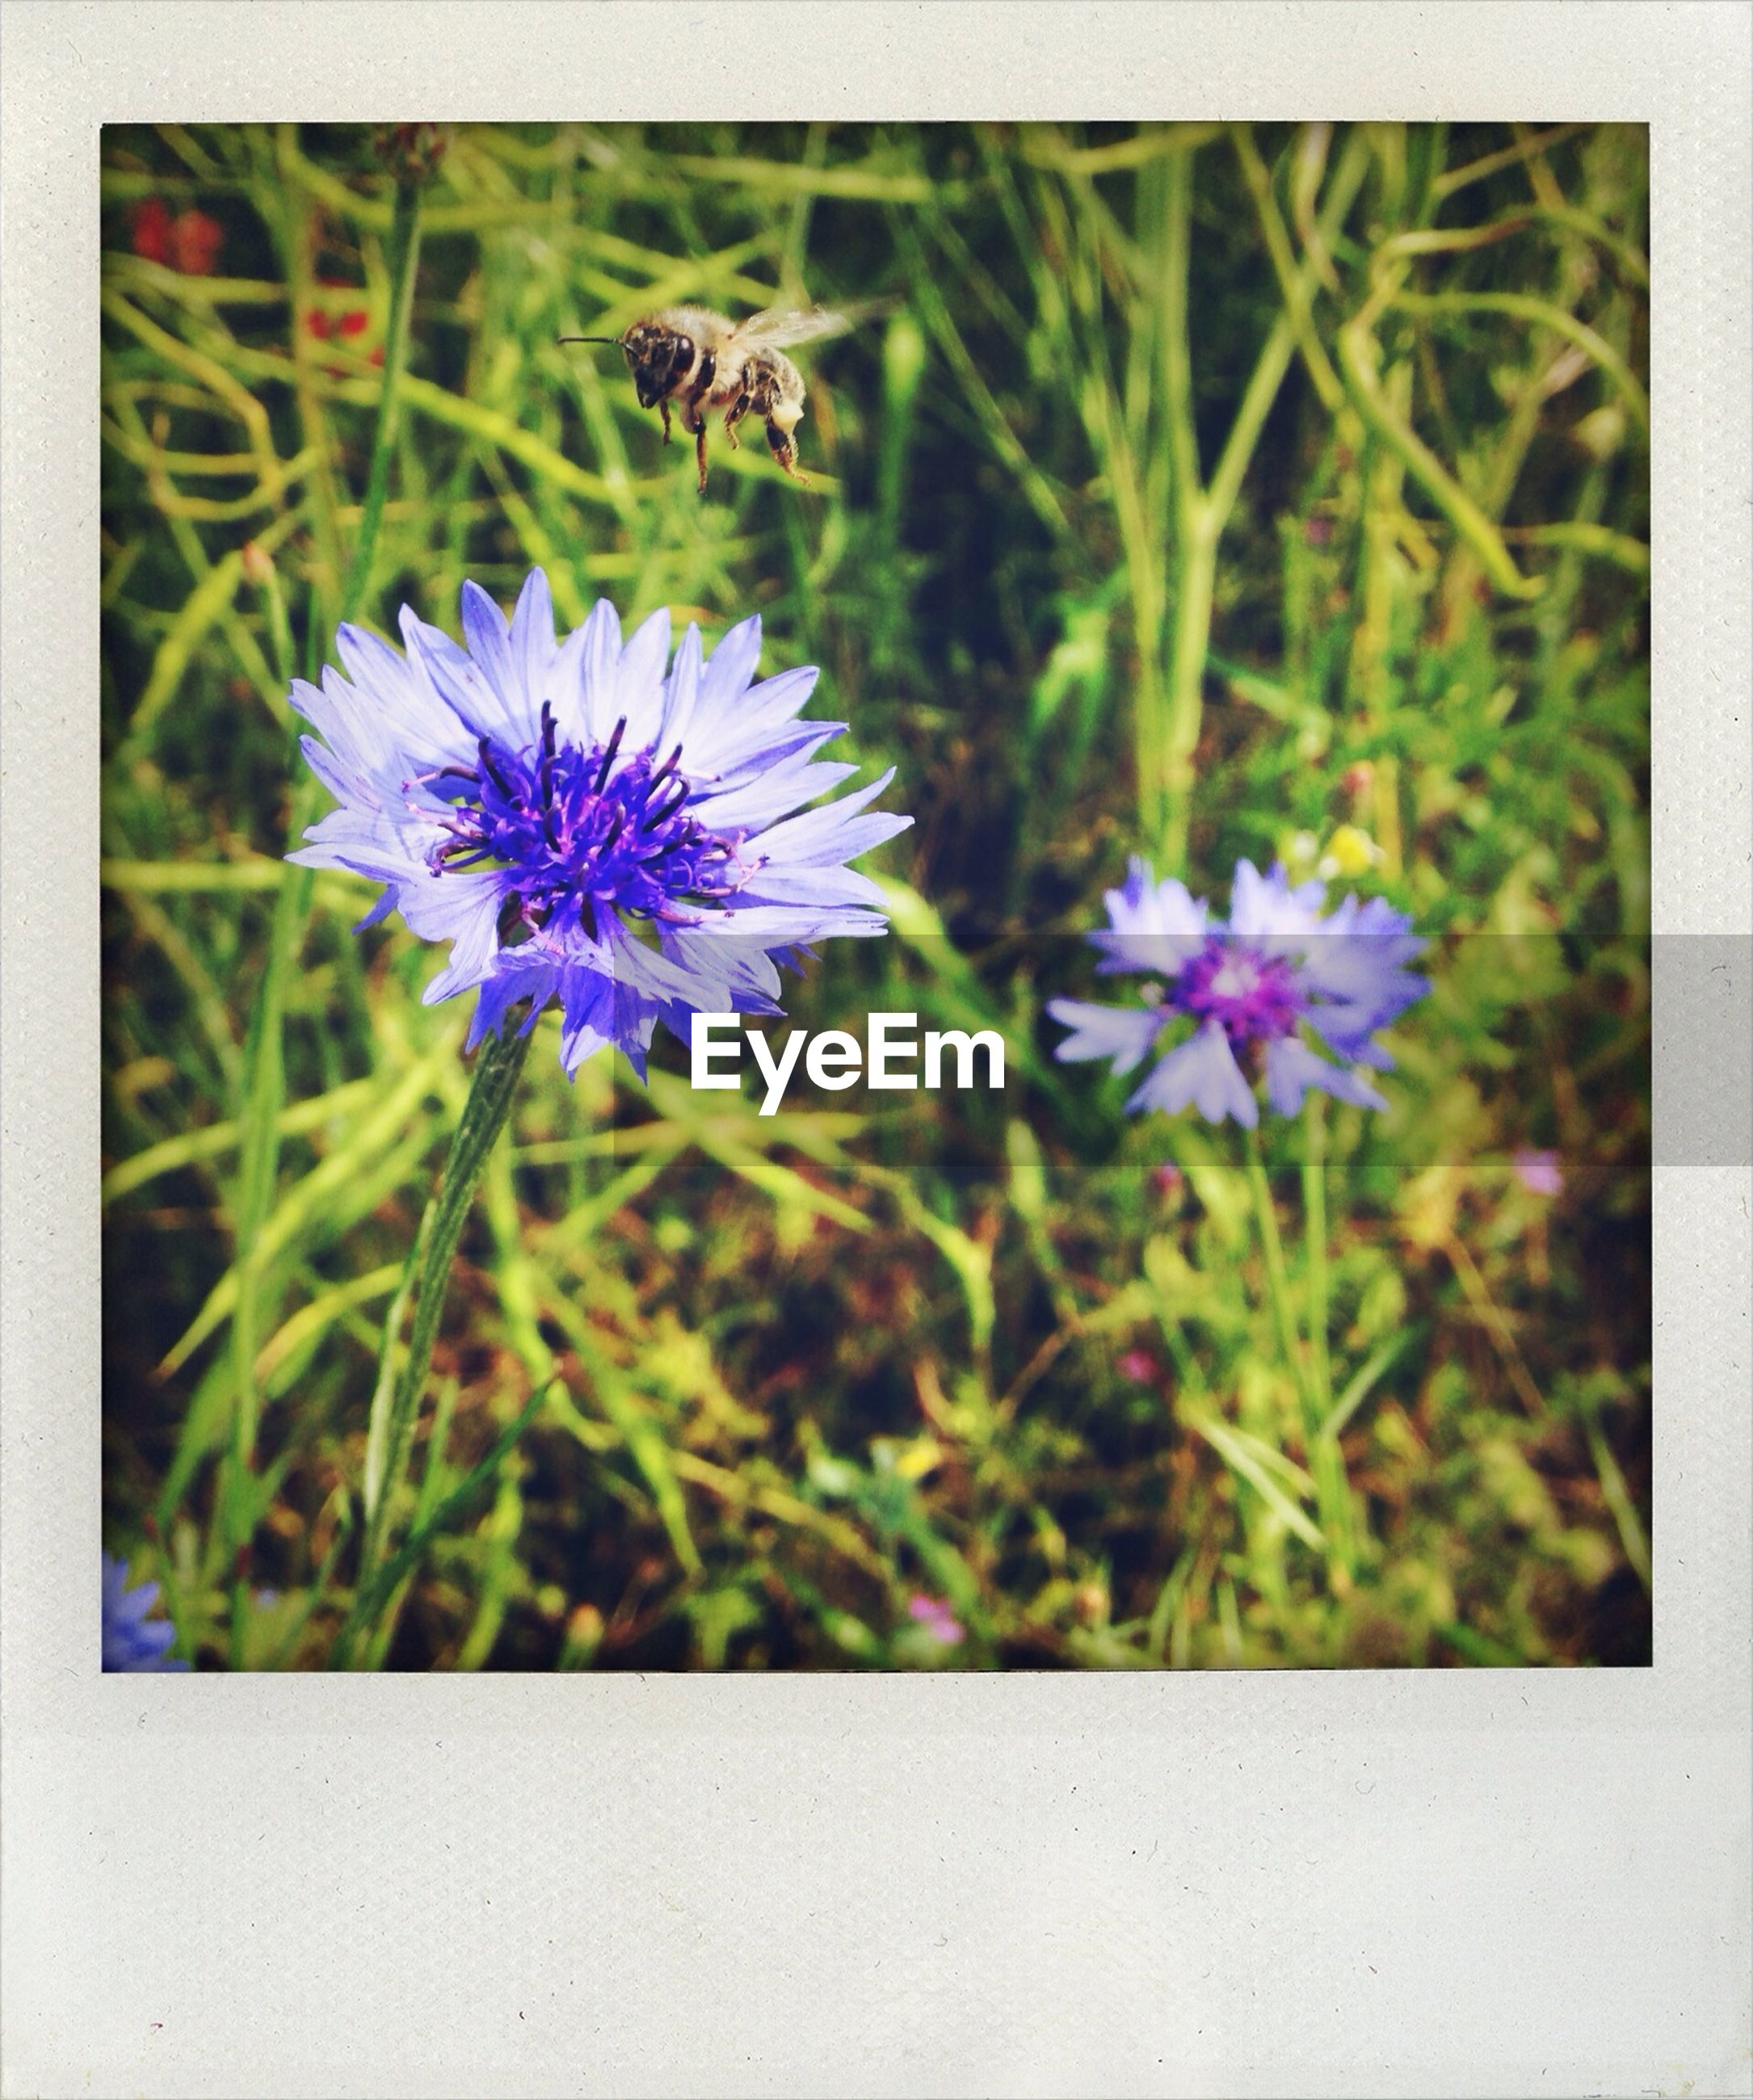 flower, freshness, purple, fragility, growth, beauty in nature, petal, flower head, nature, plant, close-up, blooming, stem, focus on foreground, in bloom, field, blossom, selective focus, wildflower, botany